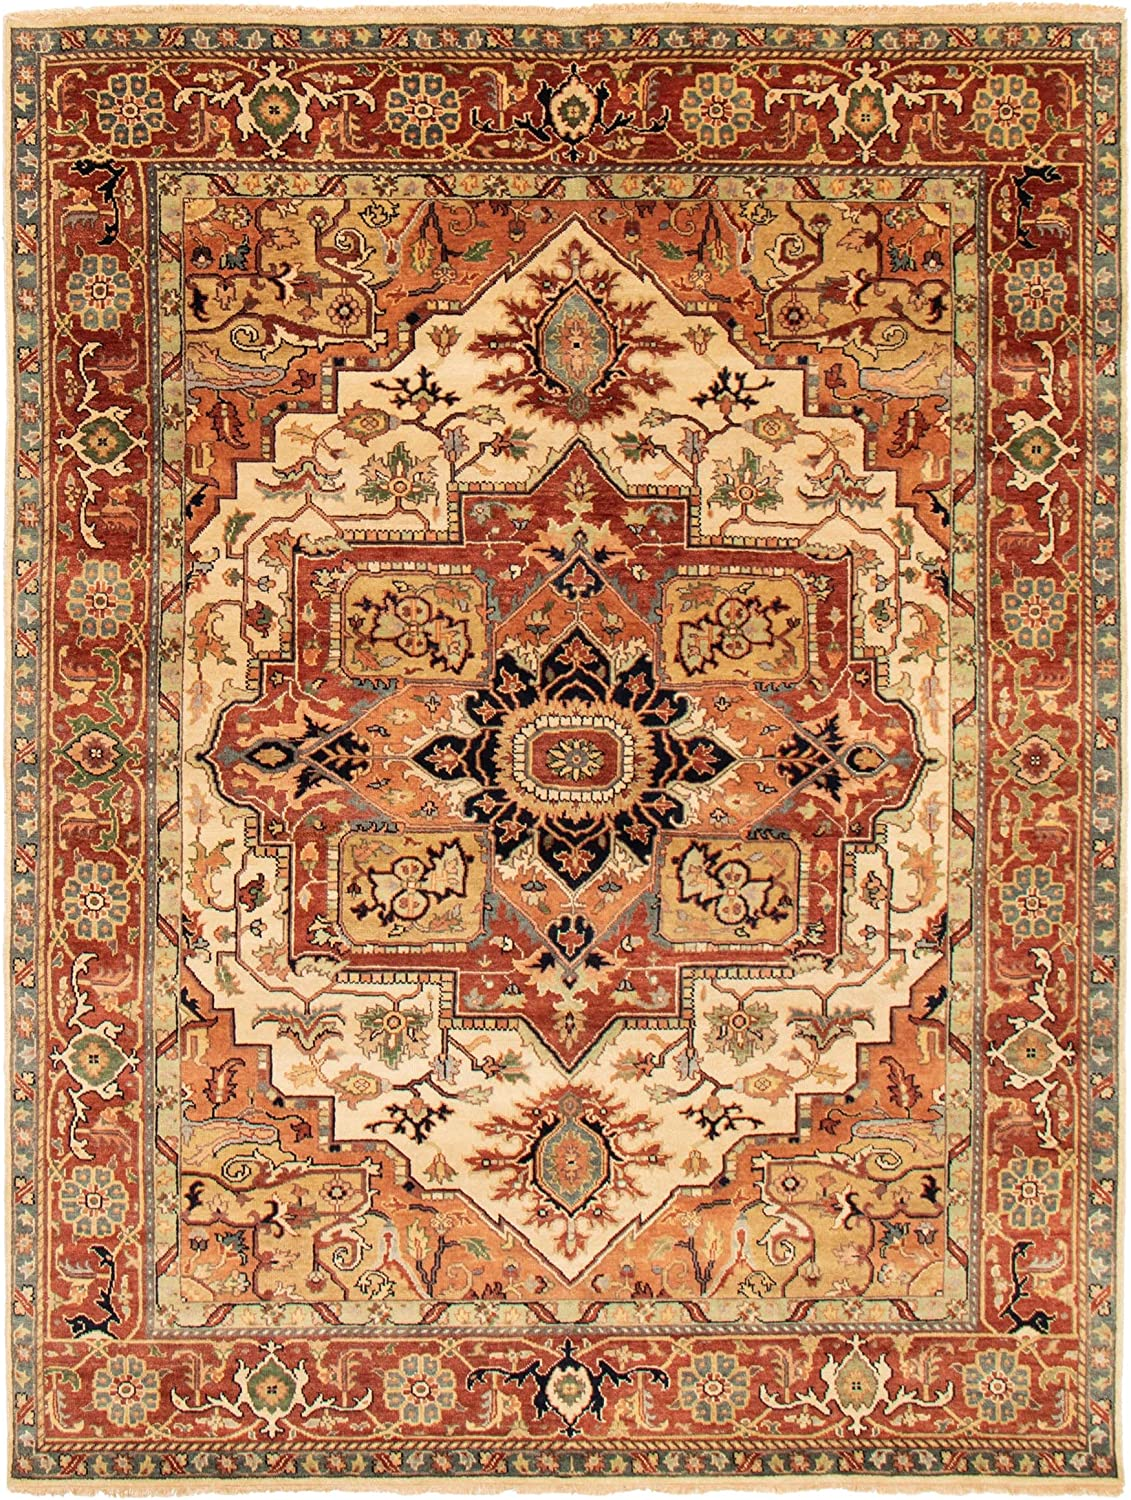 eCarpet 2021 autumn and winter new Gallery Large Area Rug Room Popular products Hand-K for Bedroom Living